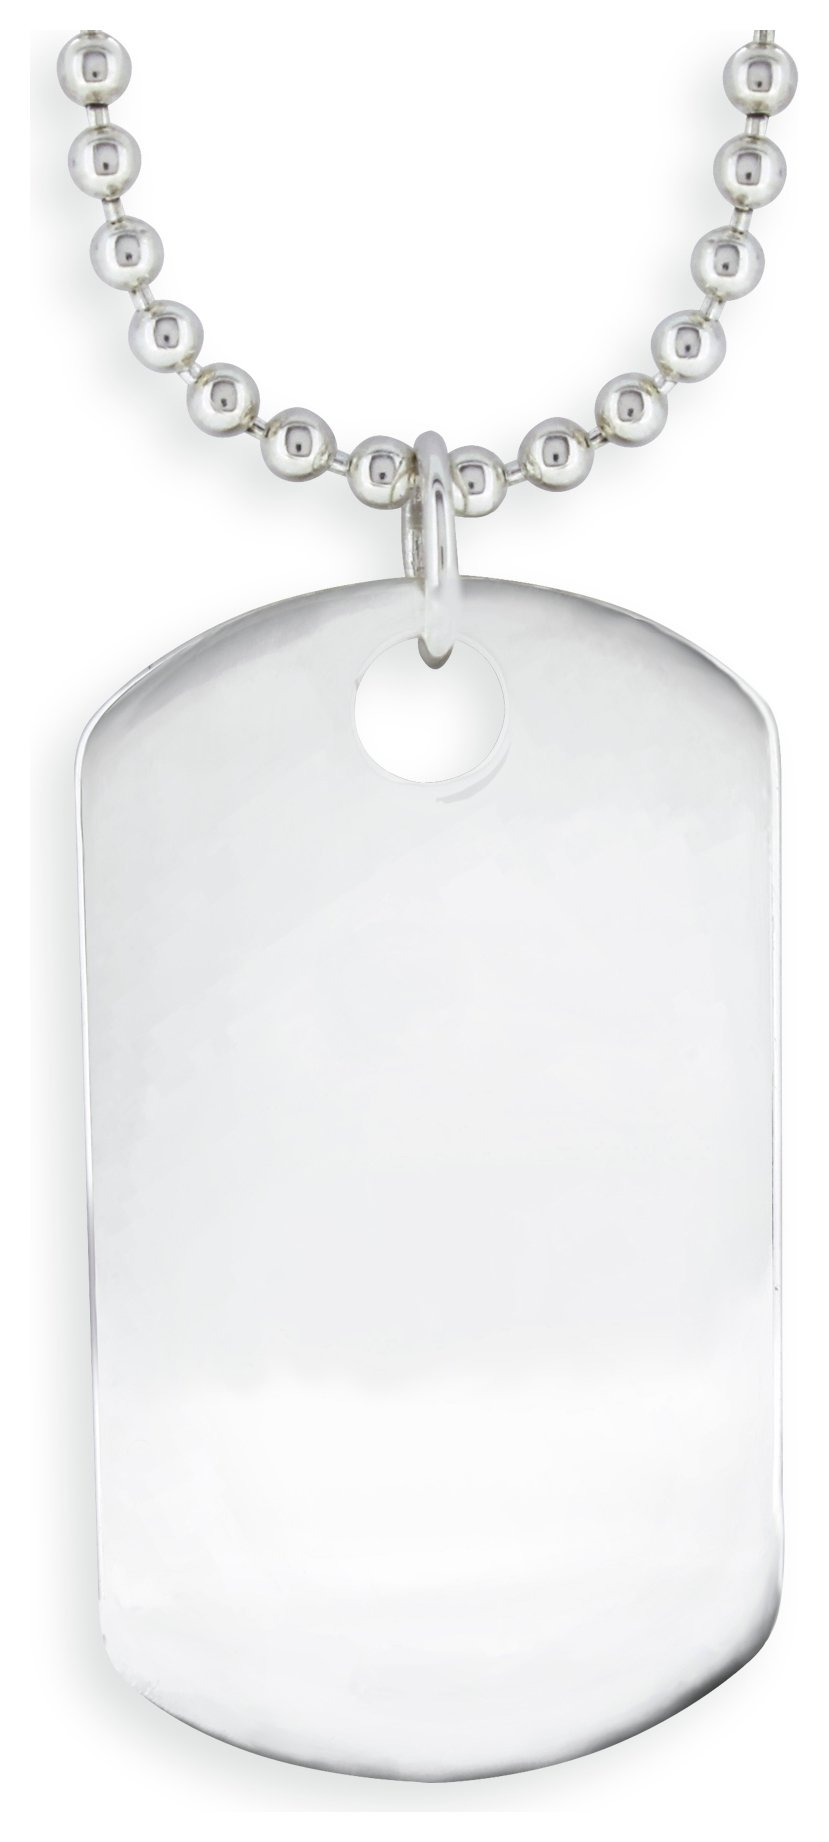 Image of Domain - Gents - Stainless Steel - Dog Tag Pendant Boxed